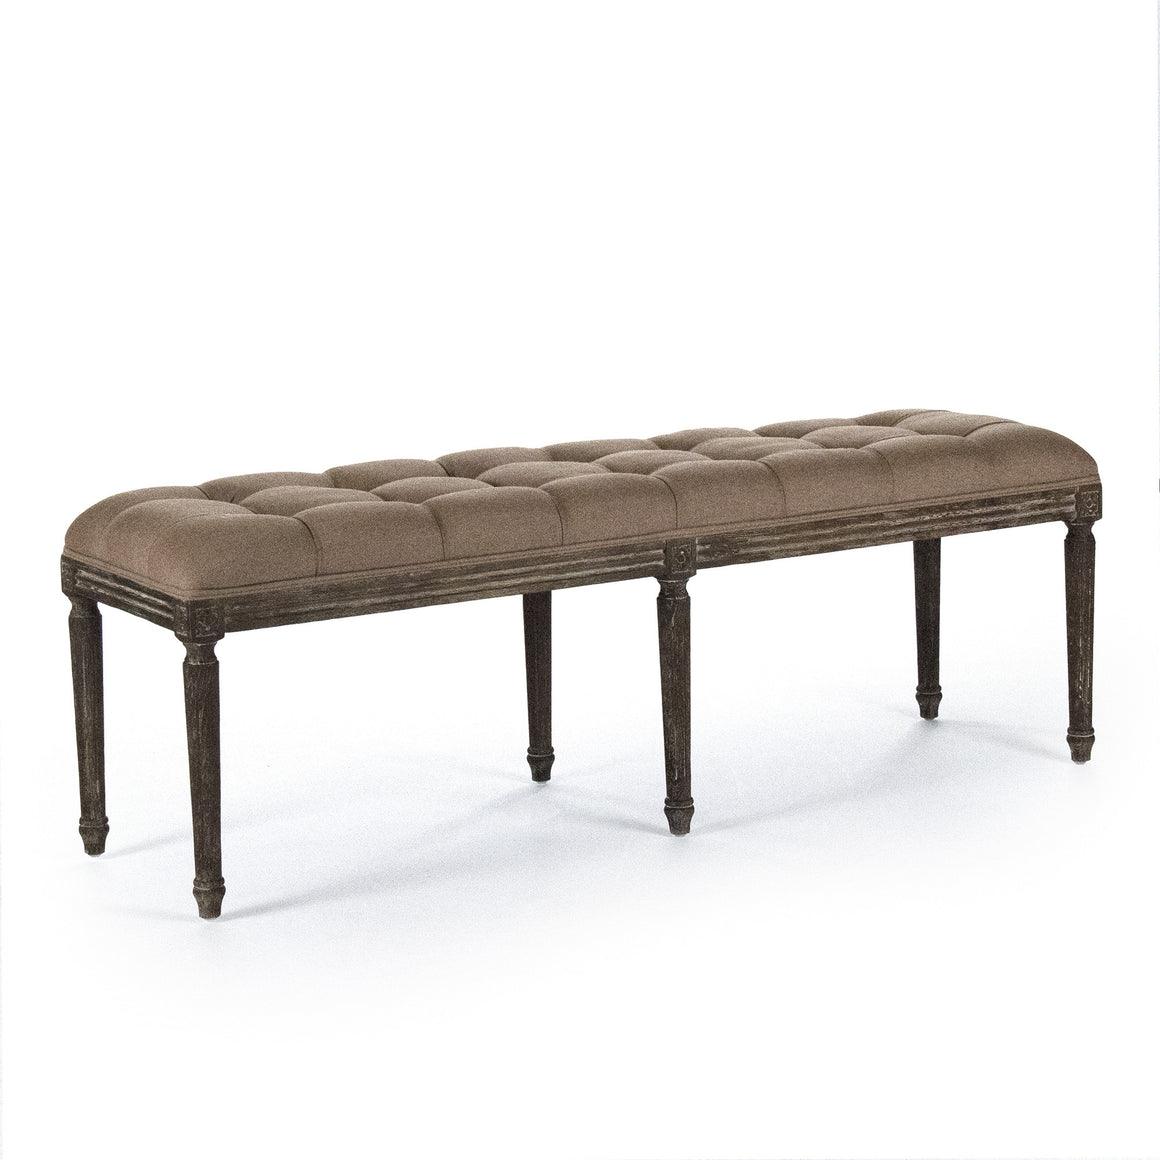 Bench - Louie Tufted Bench, Limed Oak & Copper